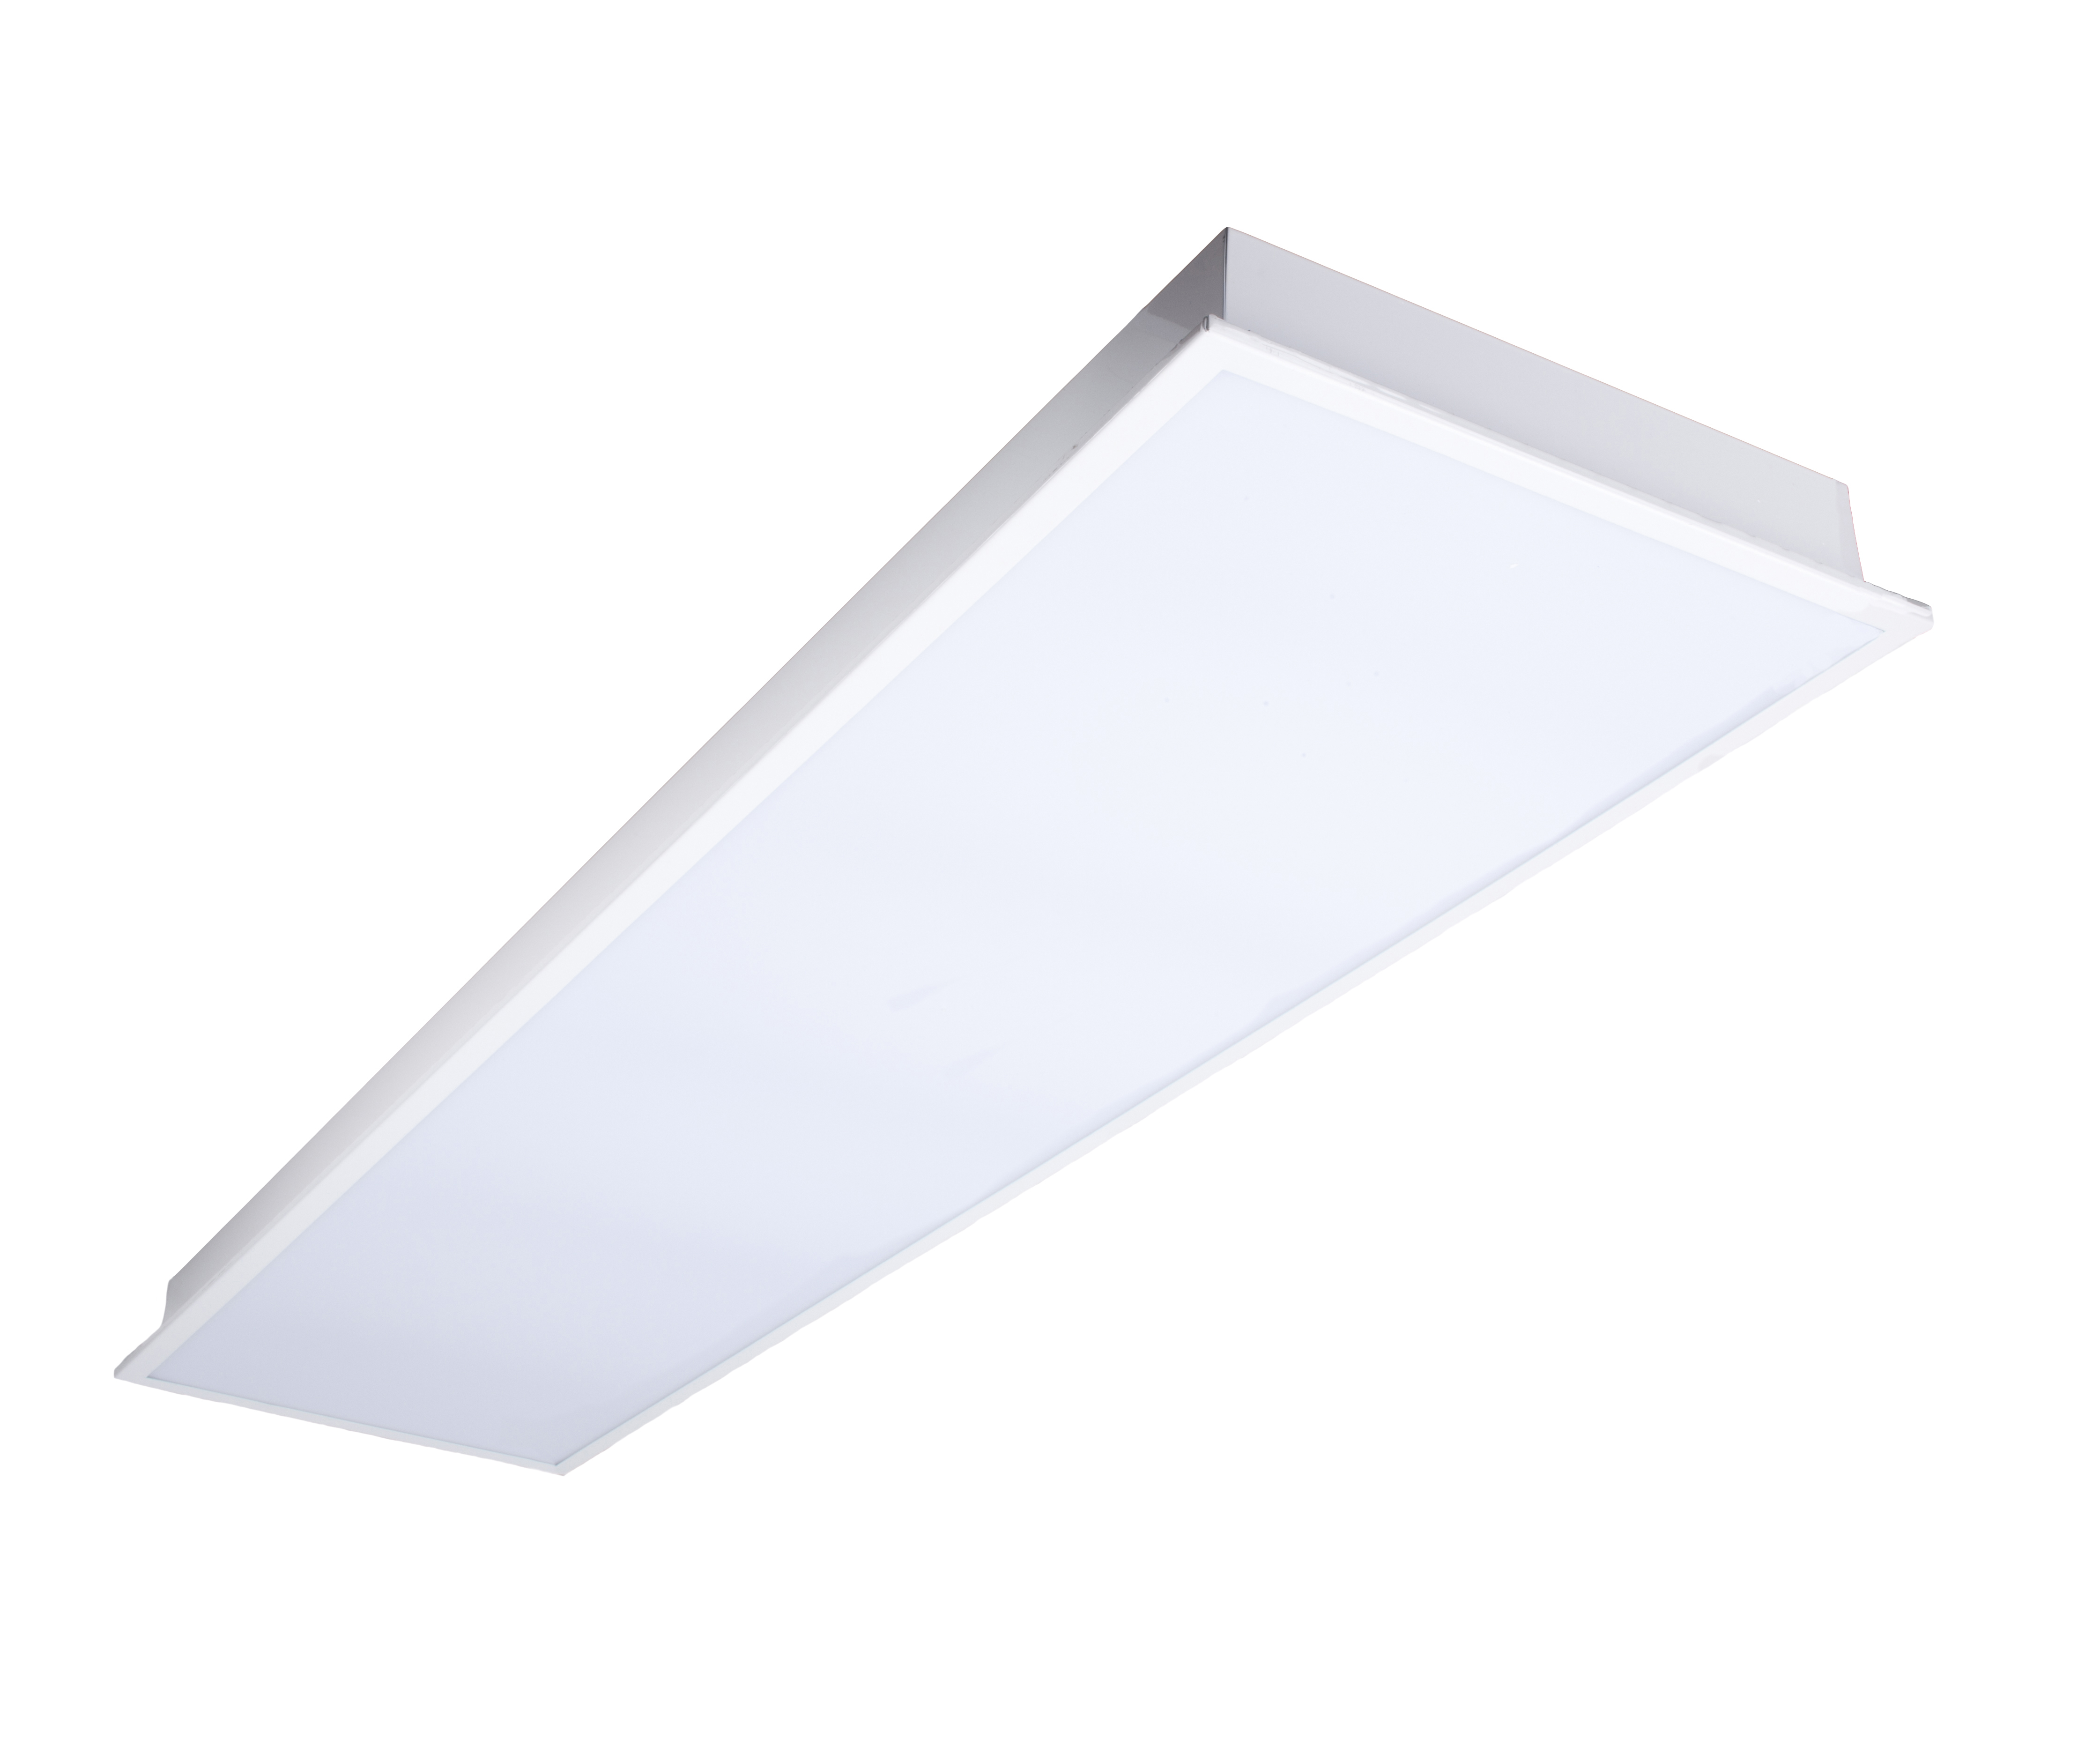 14FPL30/840/LED 81908 LED FLAT PANEL 1X4 30W 4000K 0-10V DIMMABLE